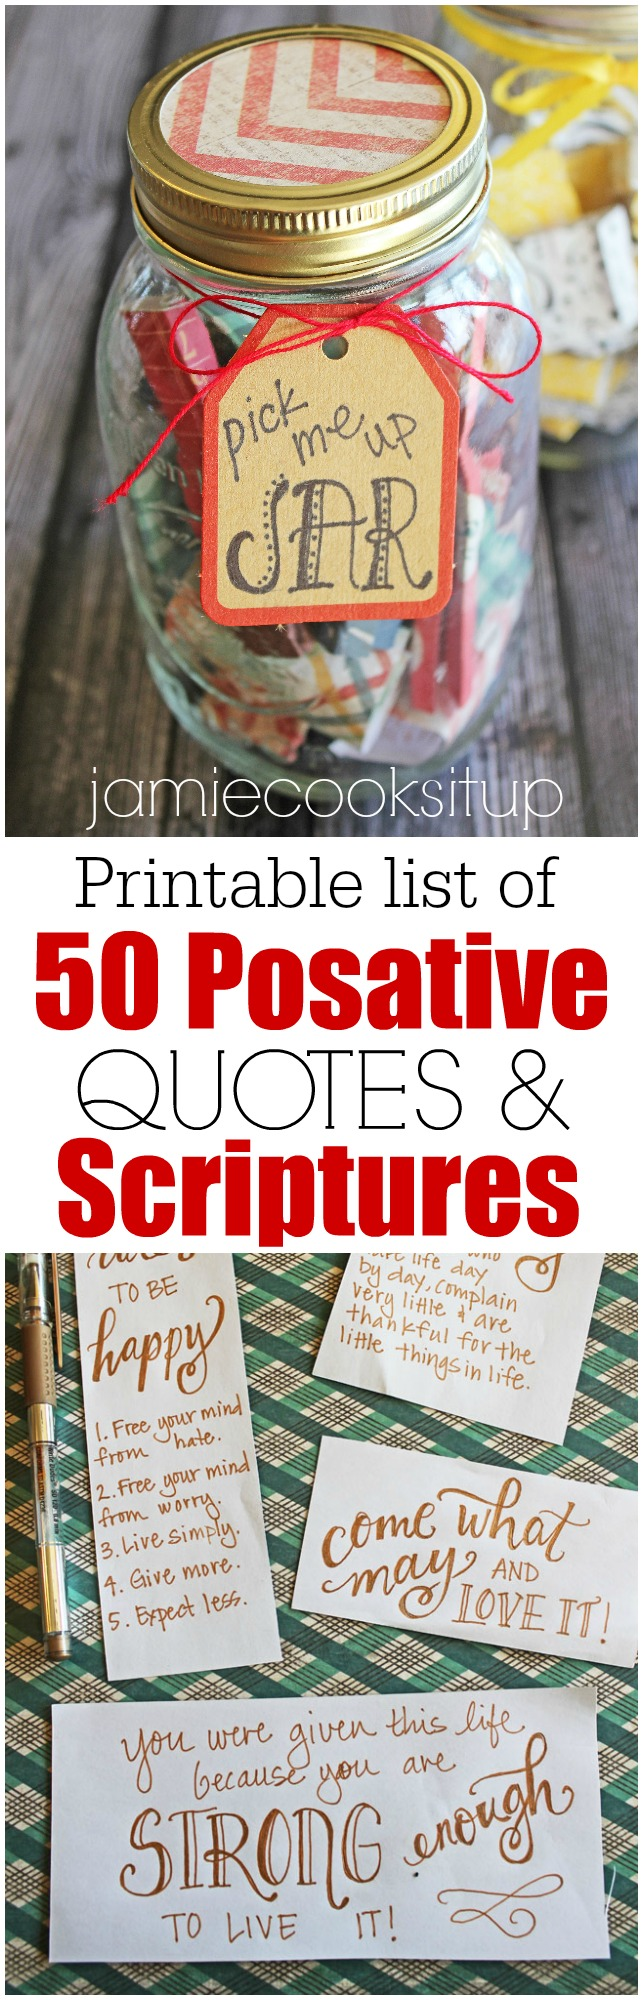 printable-list-of-50-postaive-quotes-and-scriptures